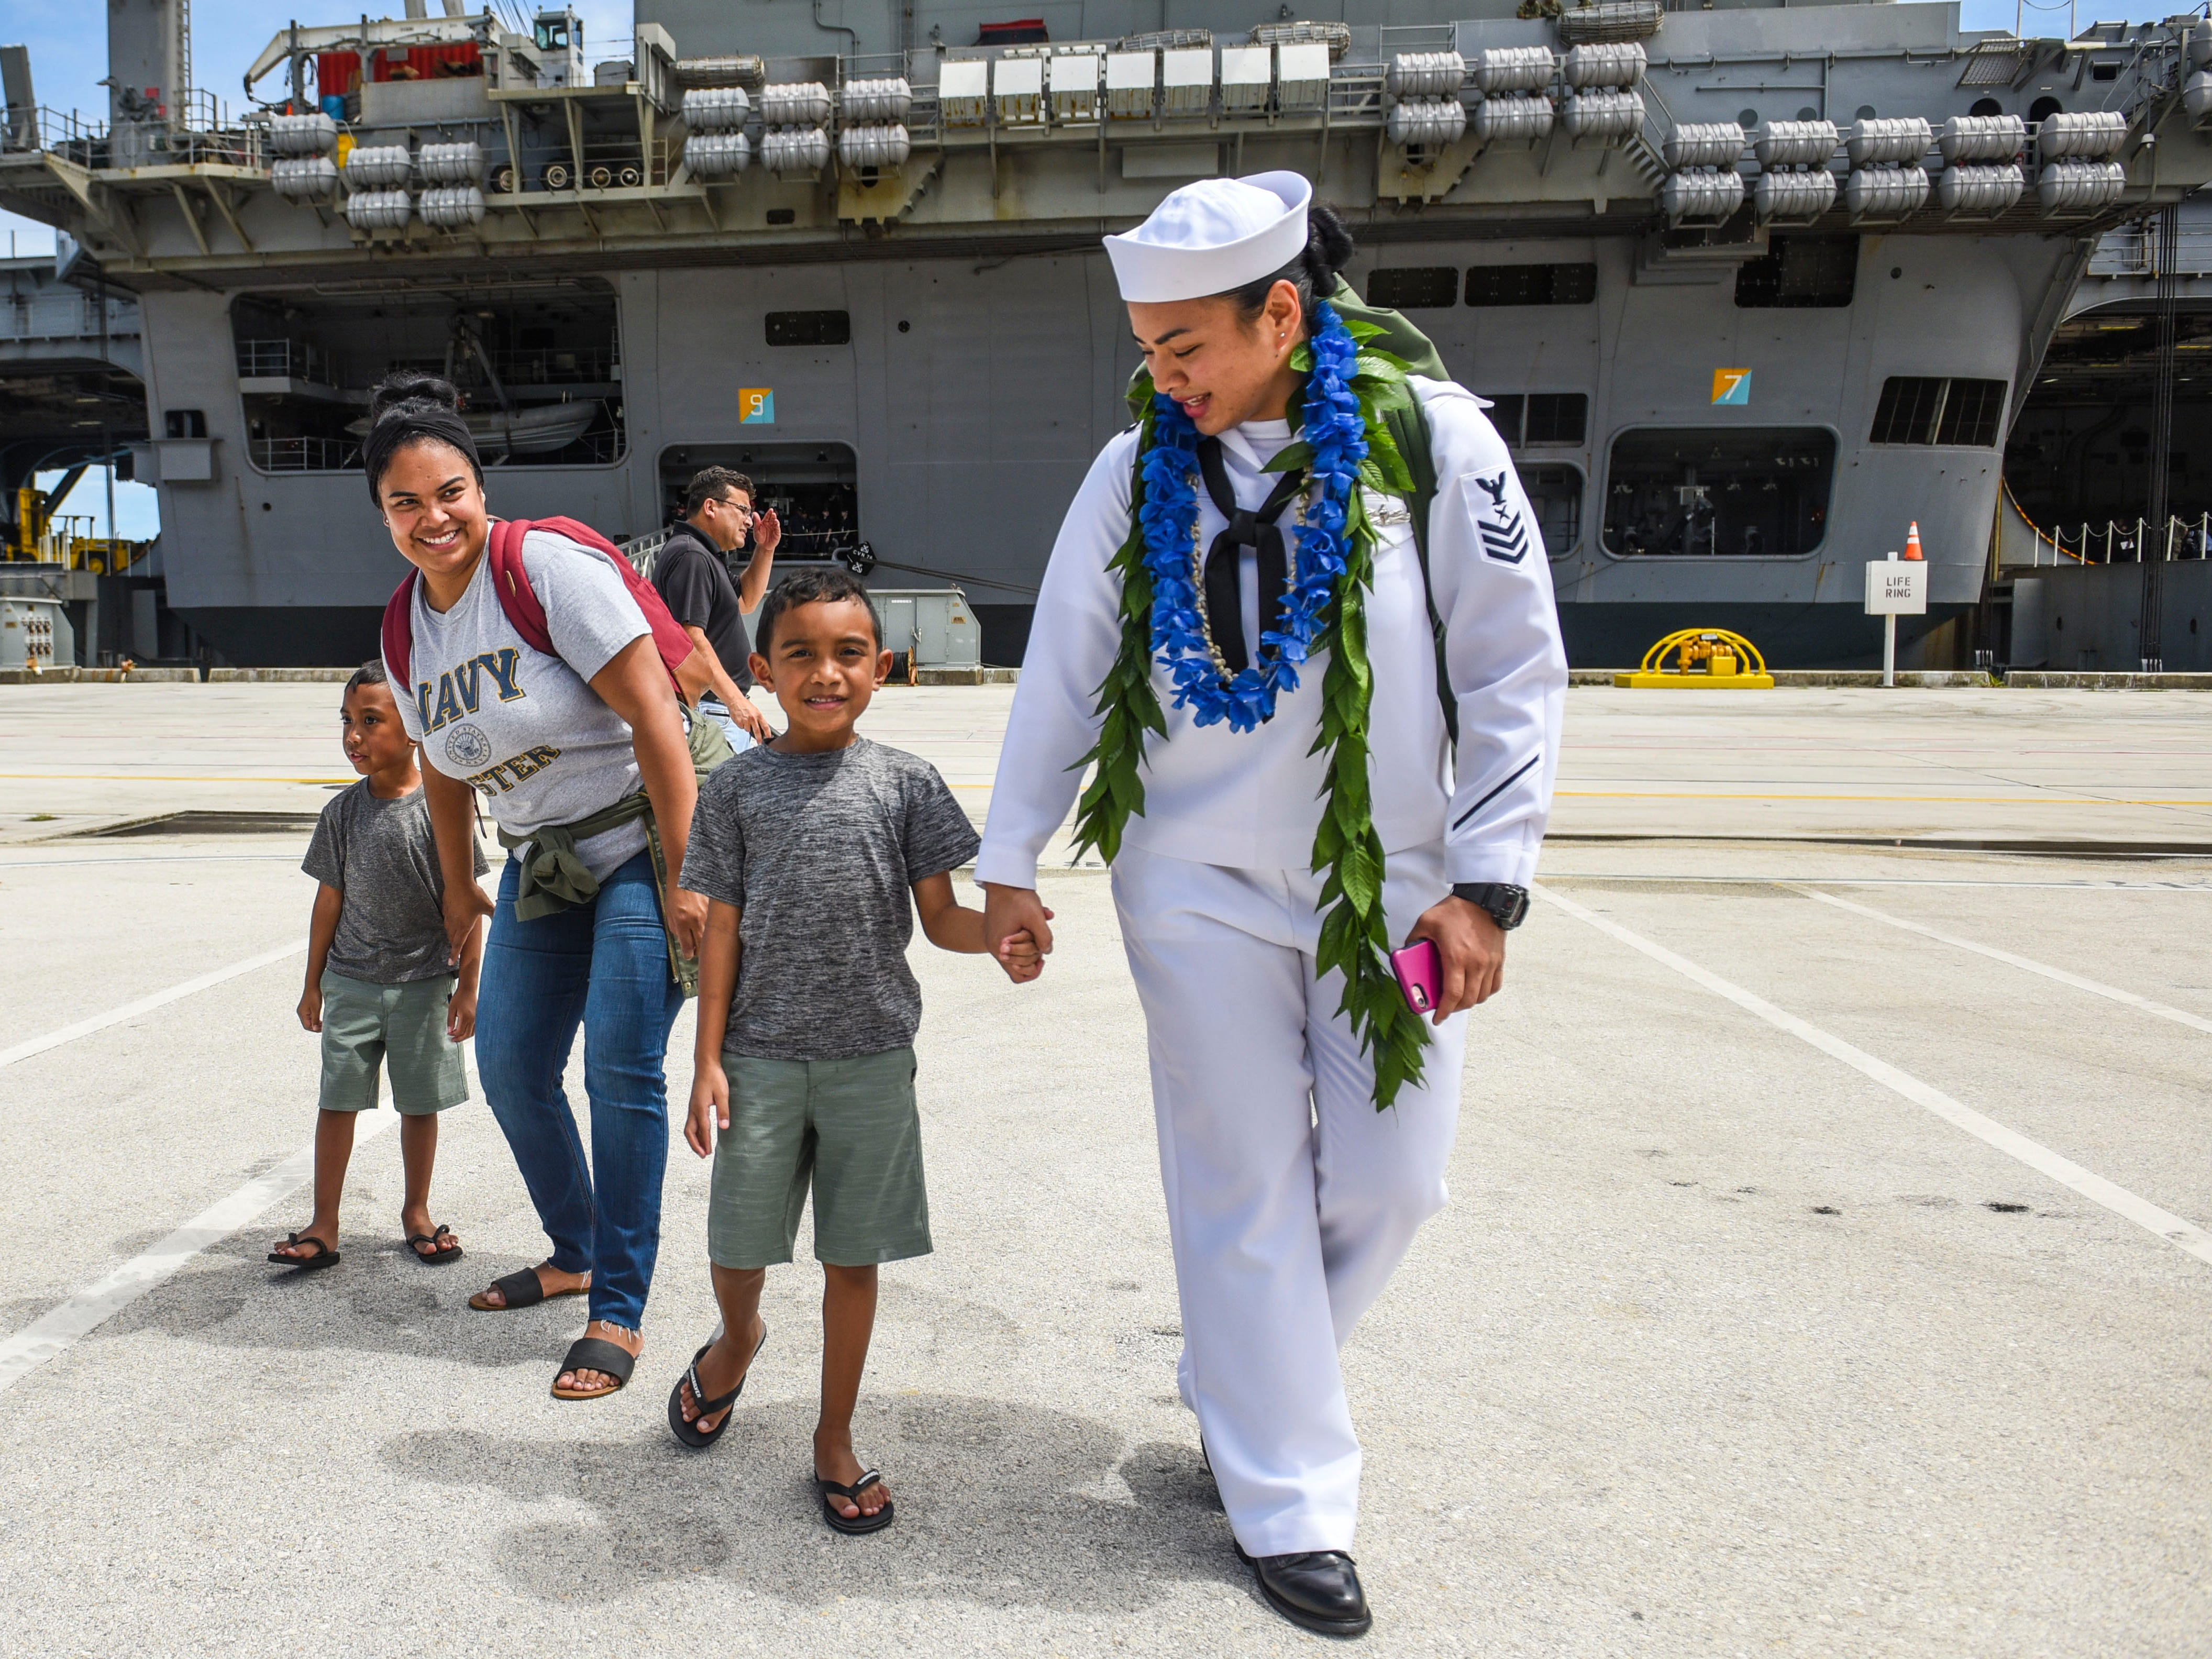 Petty Officer 1st Class Tiyana Cruz, right, walks with her godson, Brayden, and other family members after her arrival aboard the Nimitz-class nuclear-powered aircraft carrier, USS Ronald Reagan, at the Kilo Wharf on Naval Base Guam in Sumay on Monday, Sept. 24, 2018. The vessel and its crew of nearly 5,000 sailors, normally forward-deployed at Yokosuka, Japan, is paying a port visit to the island.